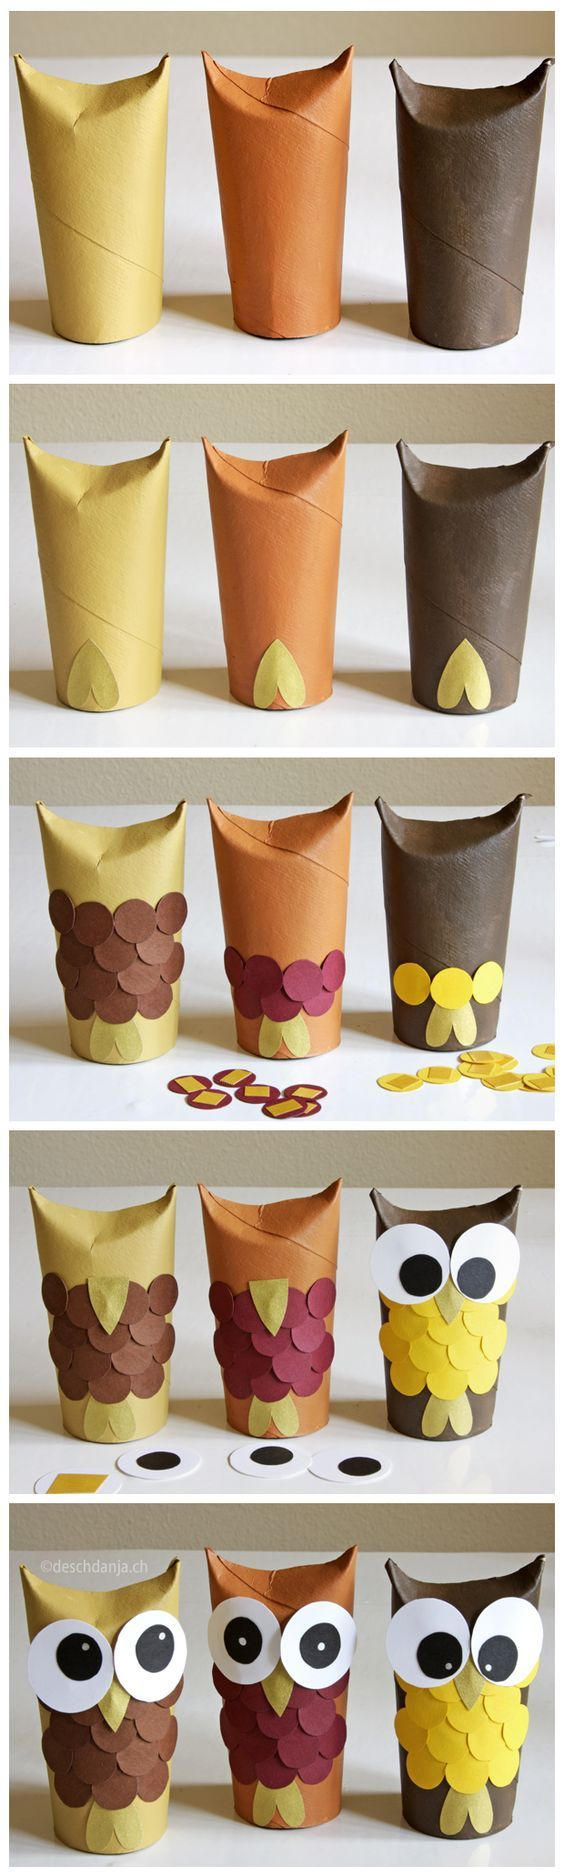 cute paper owls: paper rolls, acrylic color, paper, glue and tape. www.deschdanja.ch: